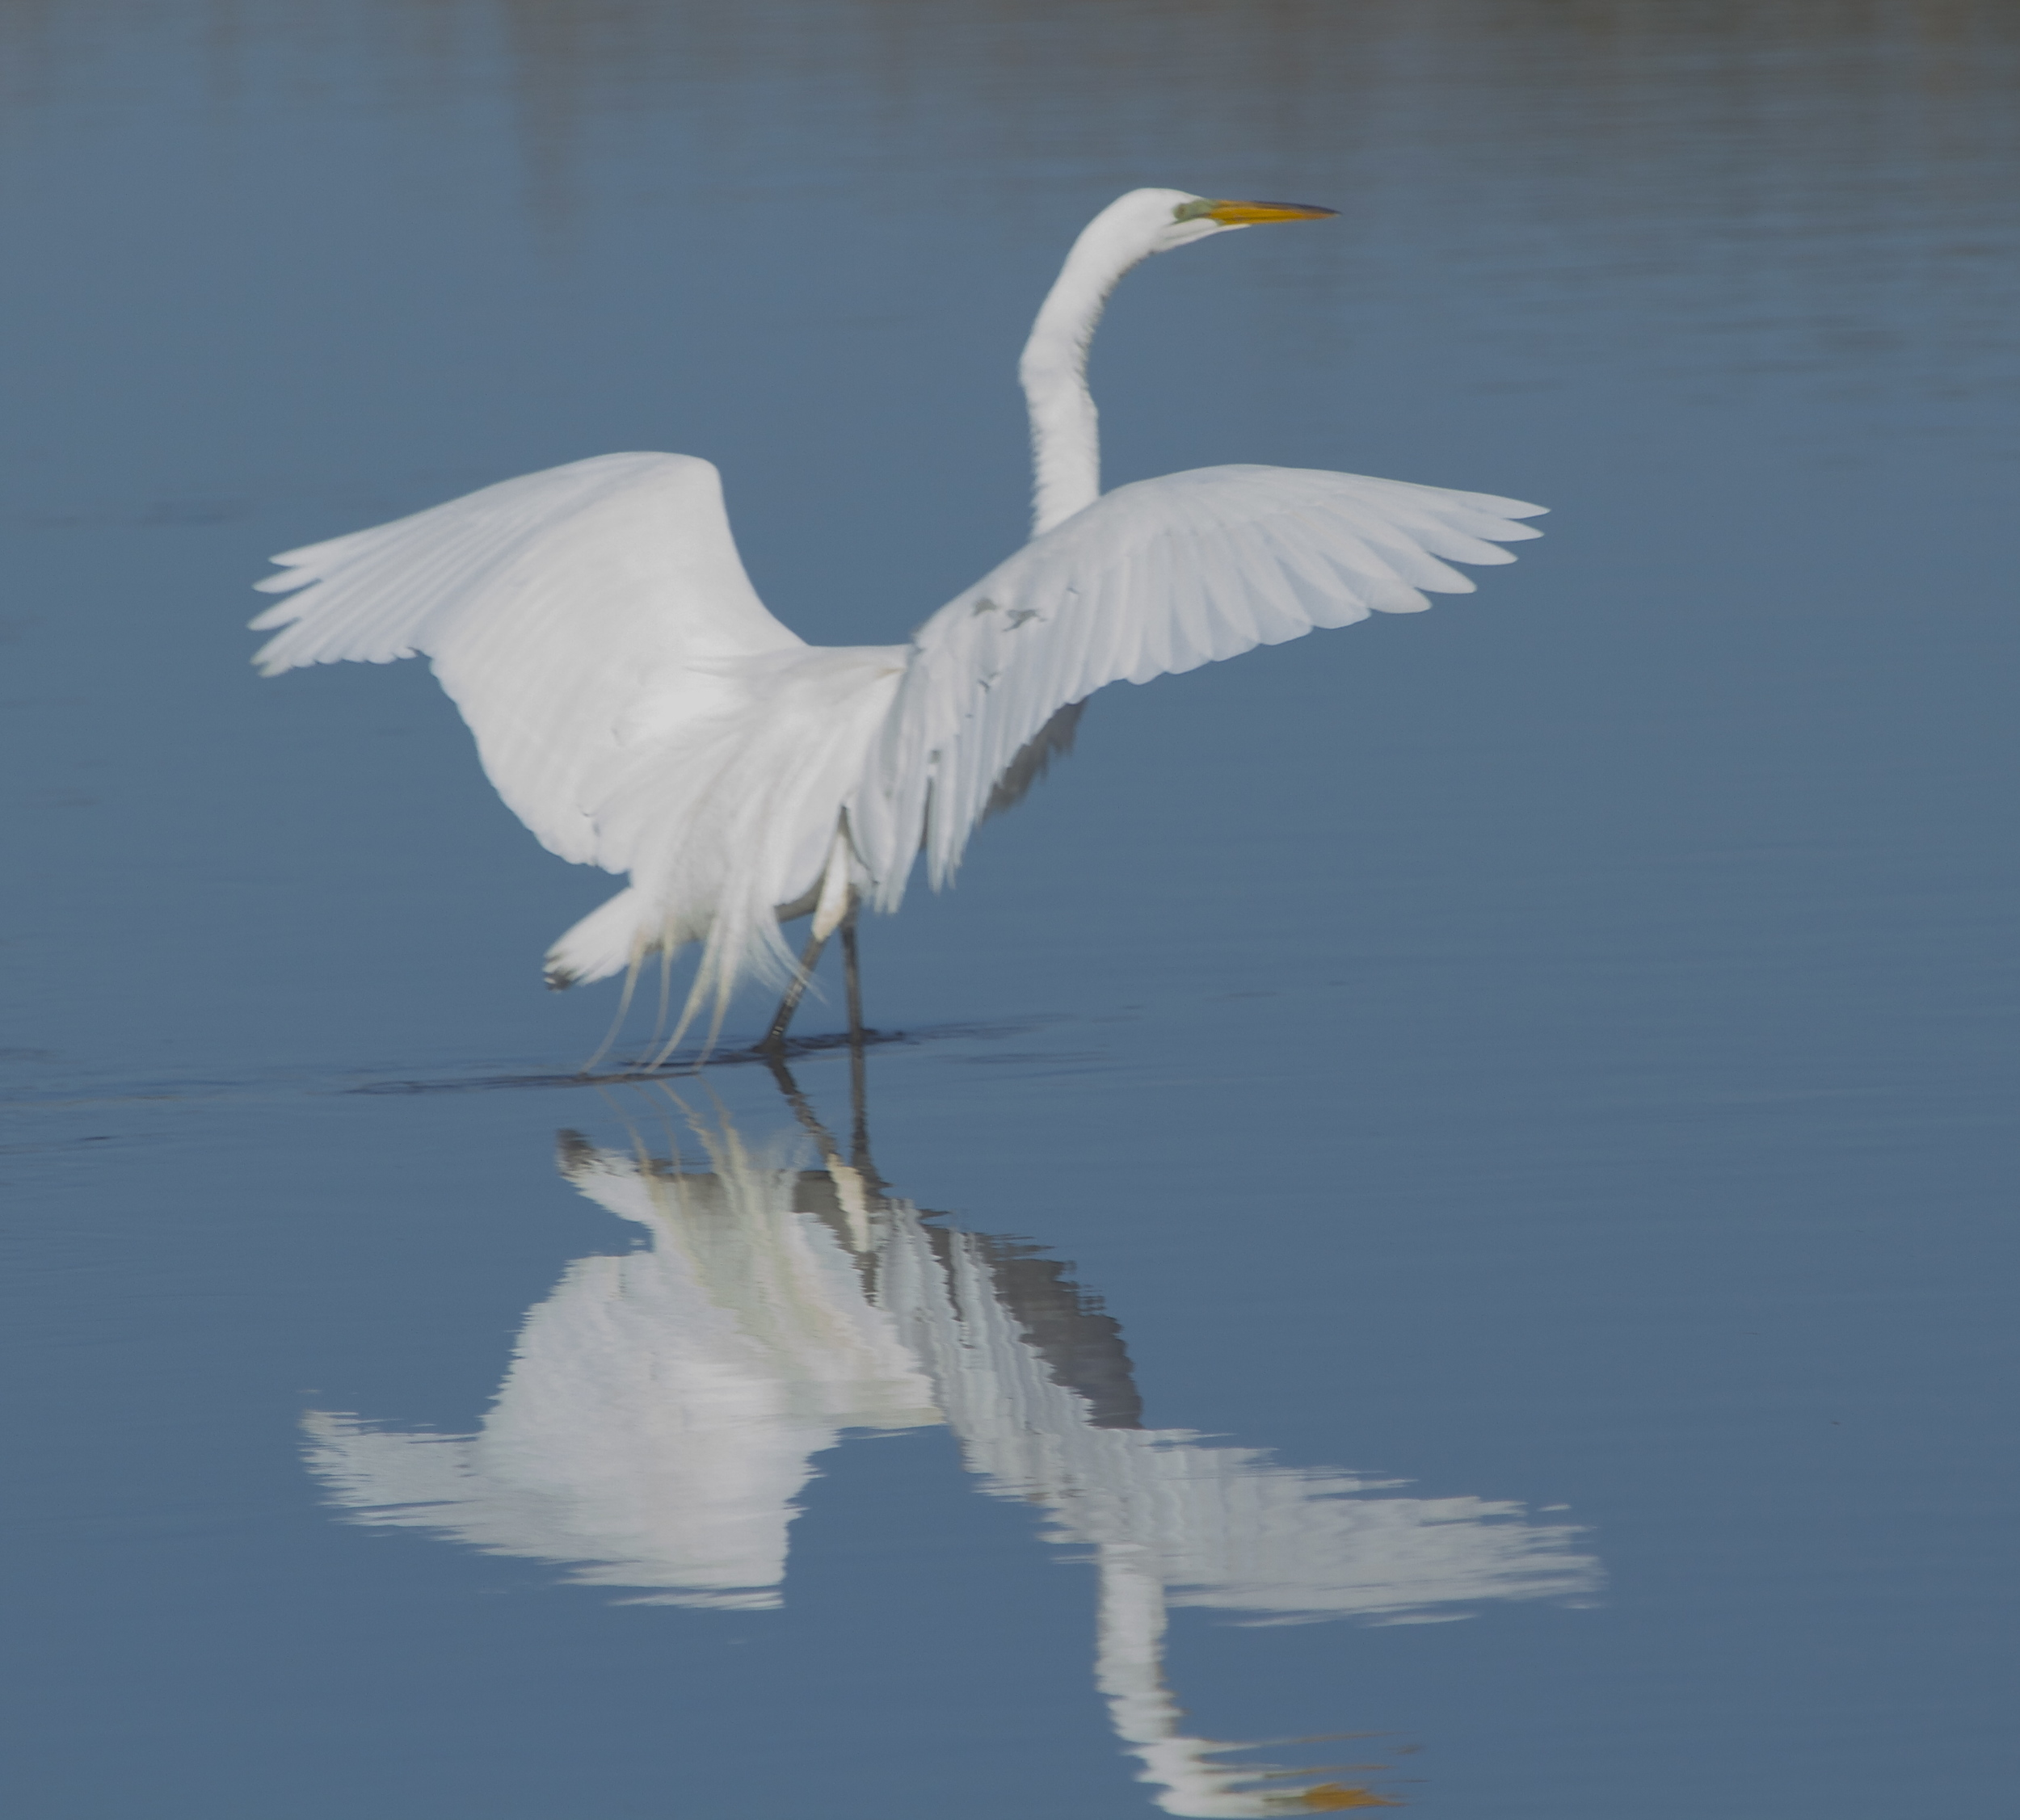 The Egret is still showing breeding colors as the broad wings reflect in the Broward.